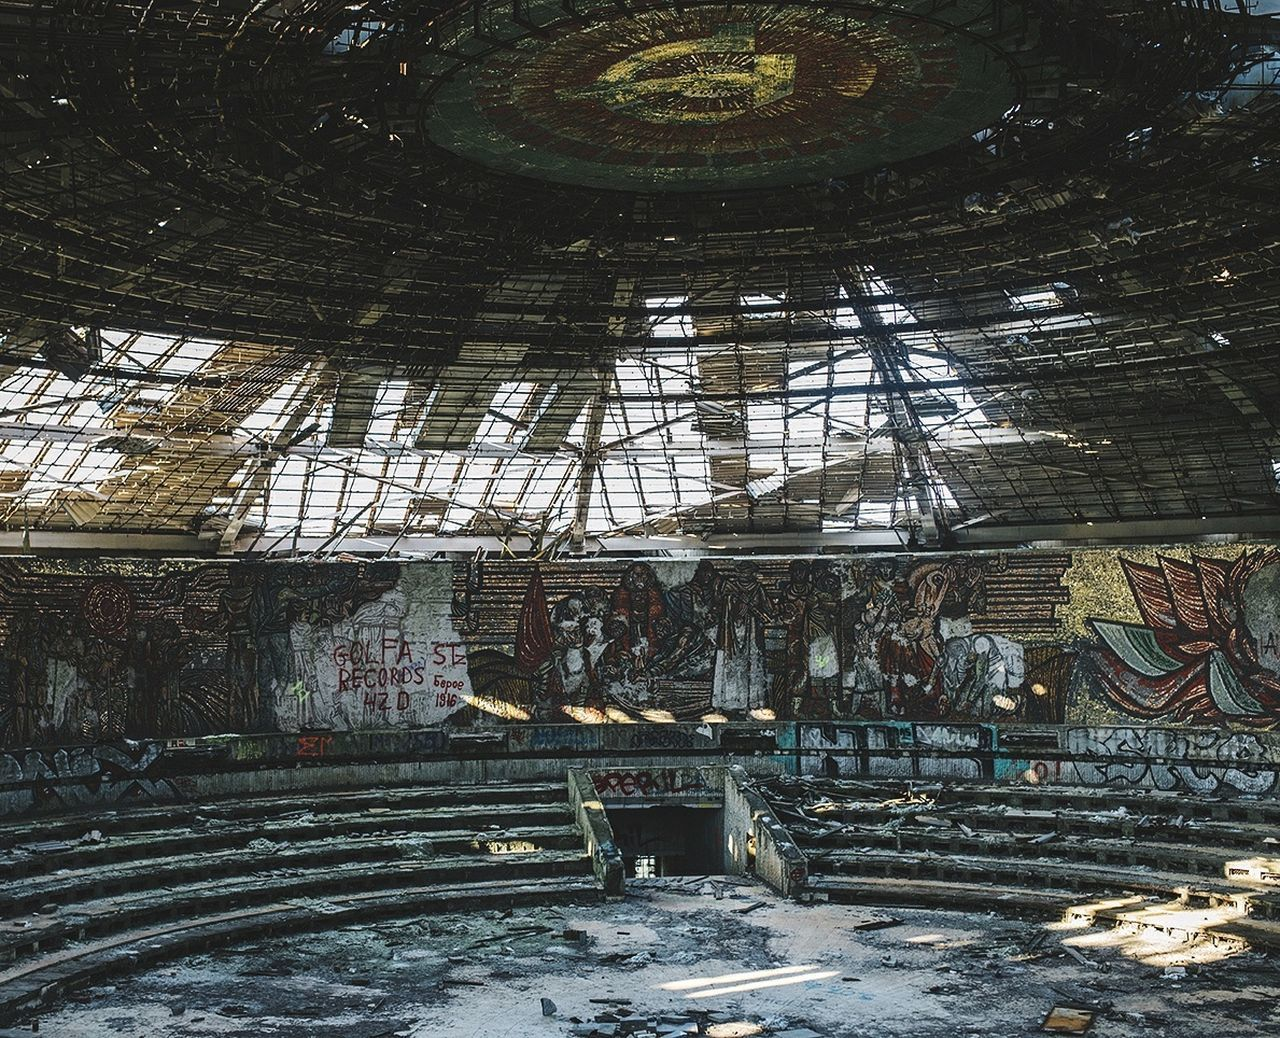 indoors, abandoned, architecture, low angle view, no people, built structure, day, factory